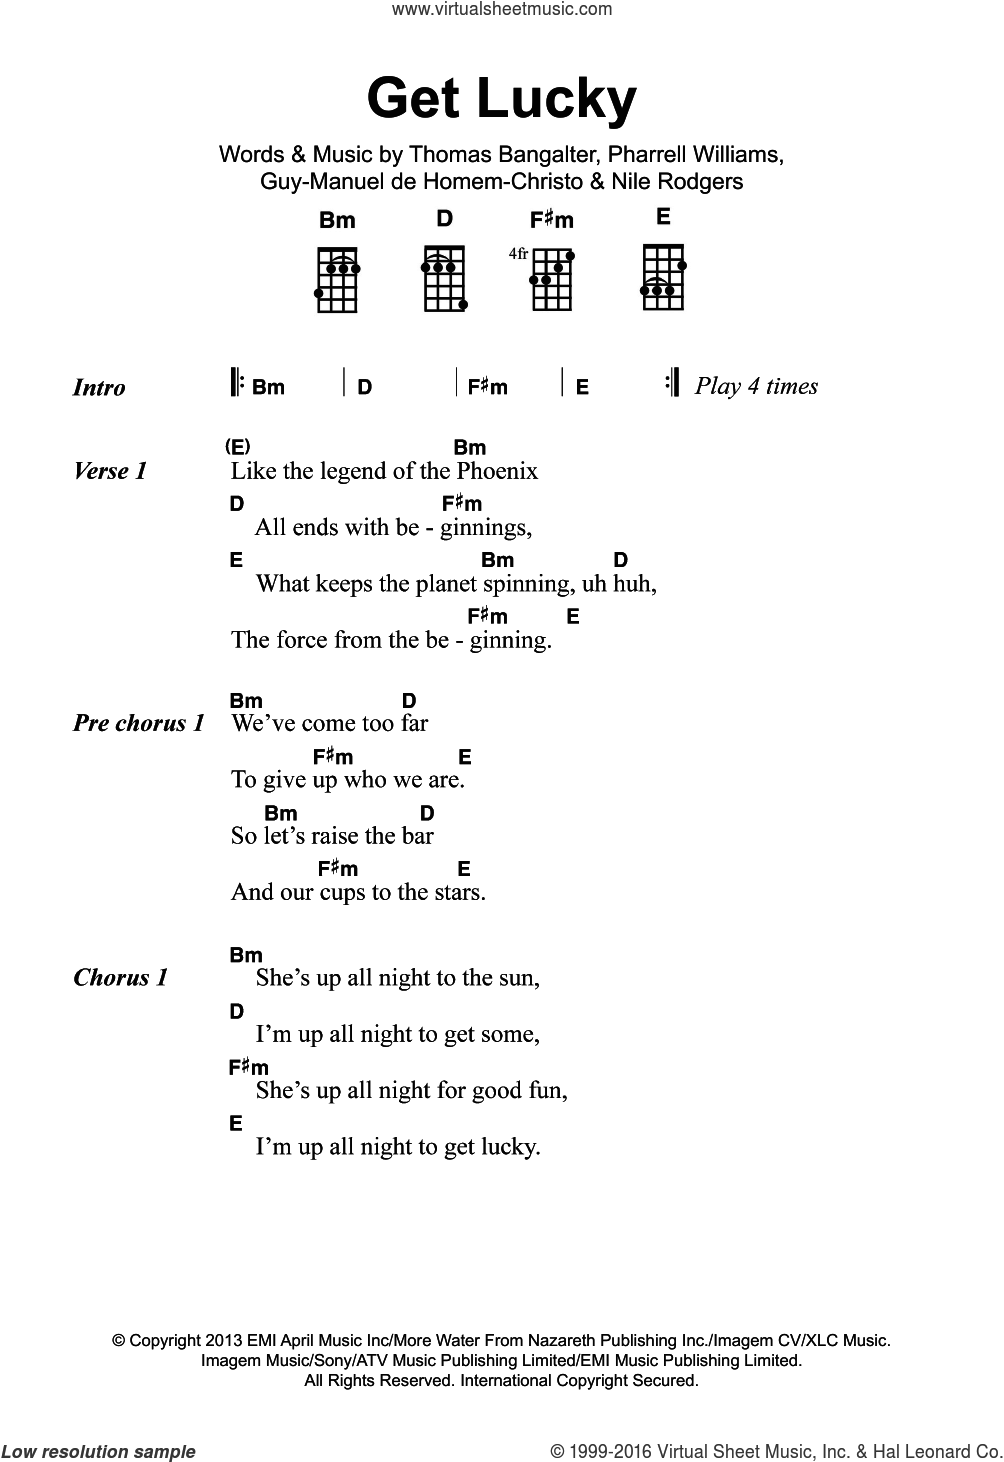 Get Lucky (featuring Pharrell Williams) sheet music for voice, piano or guitar by Thomas Bangalter